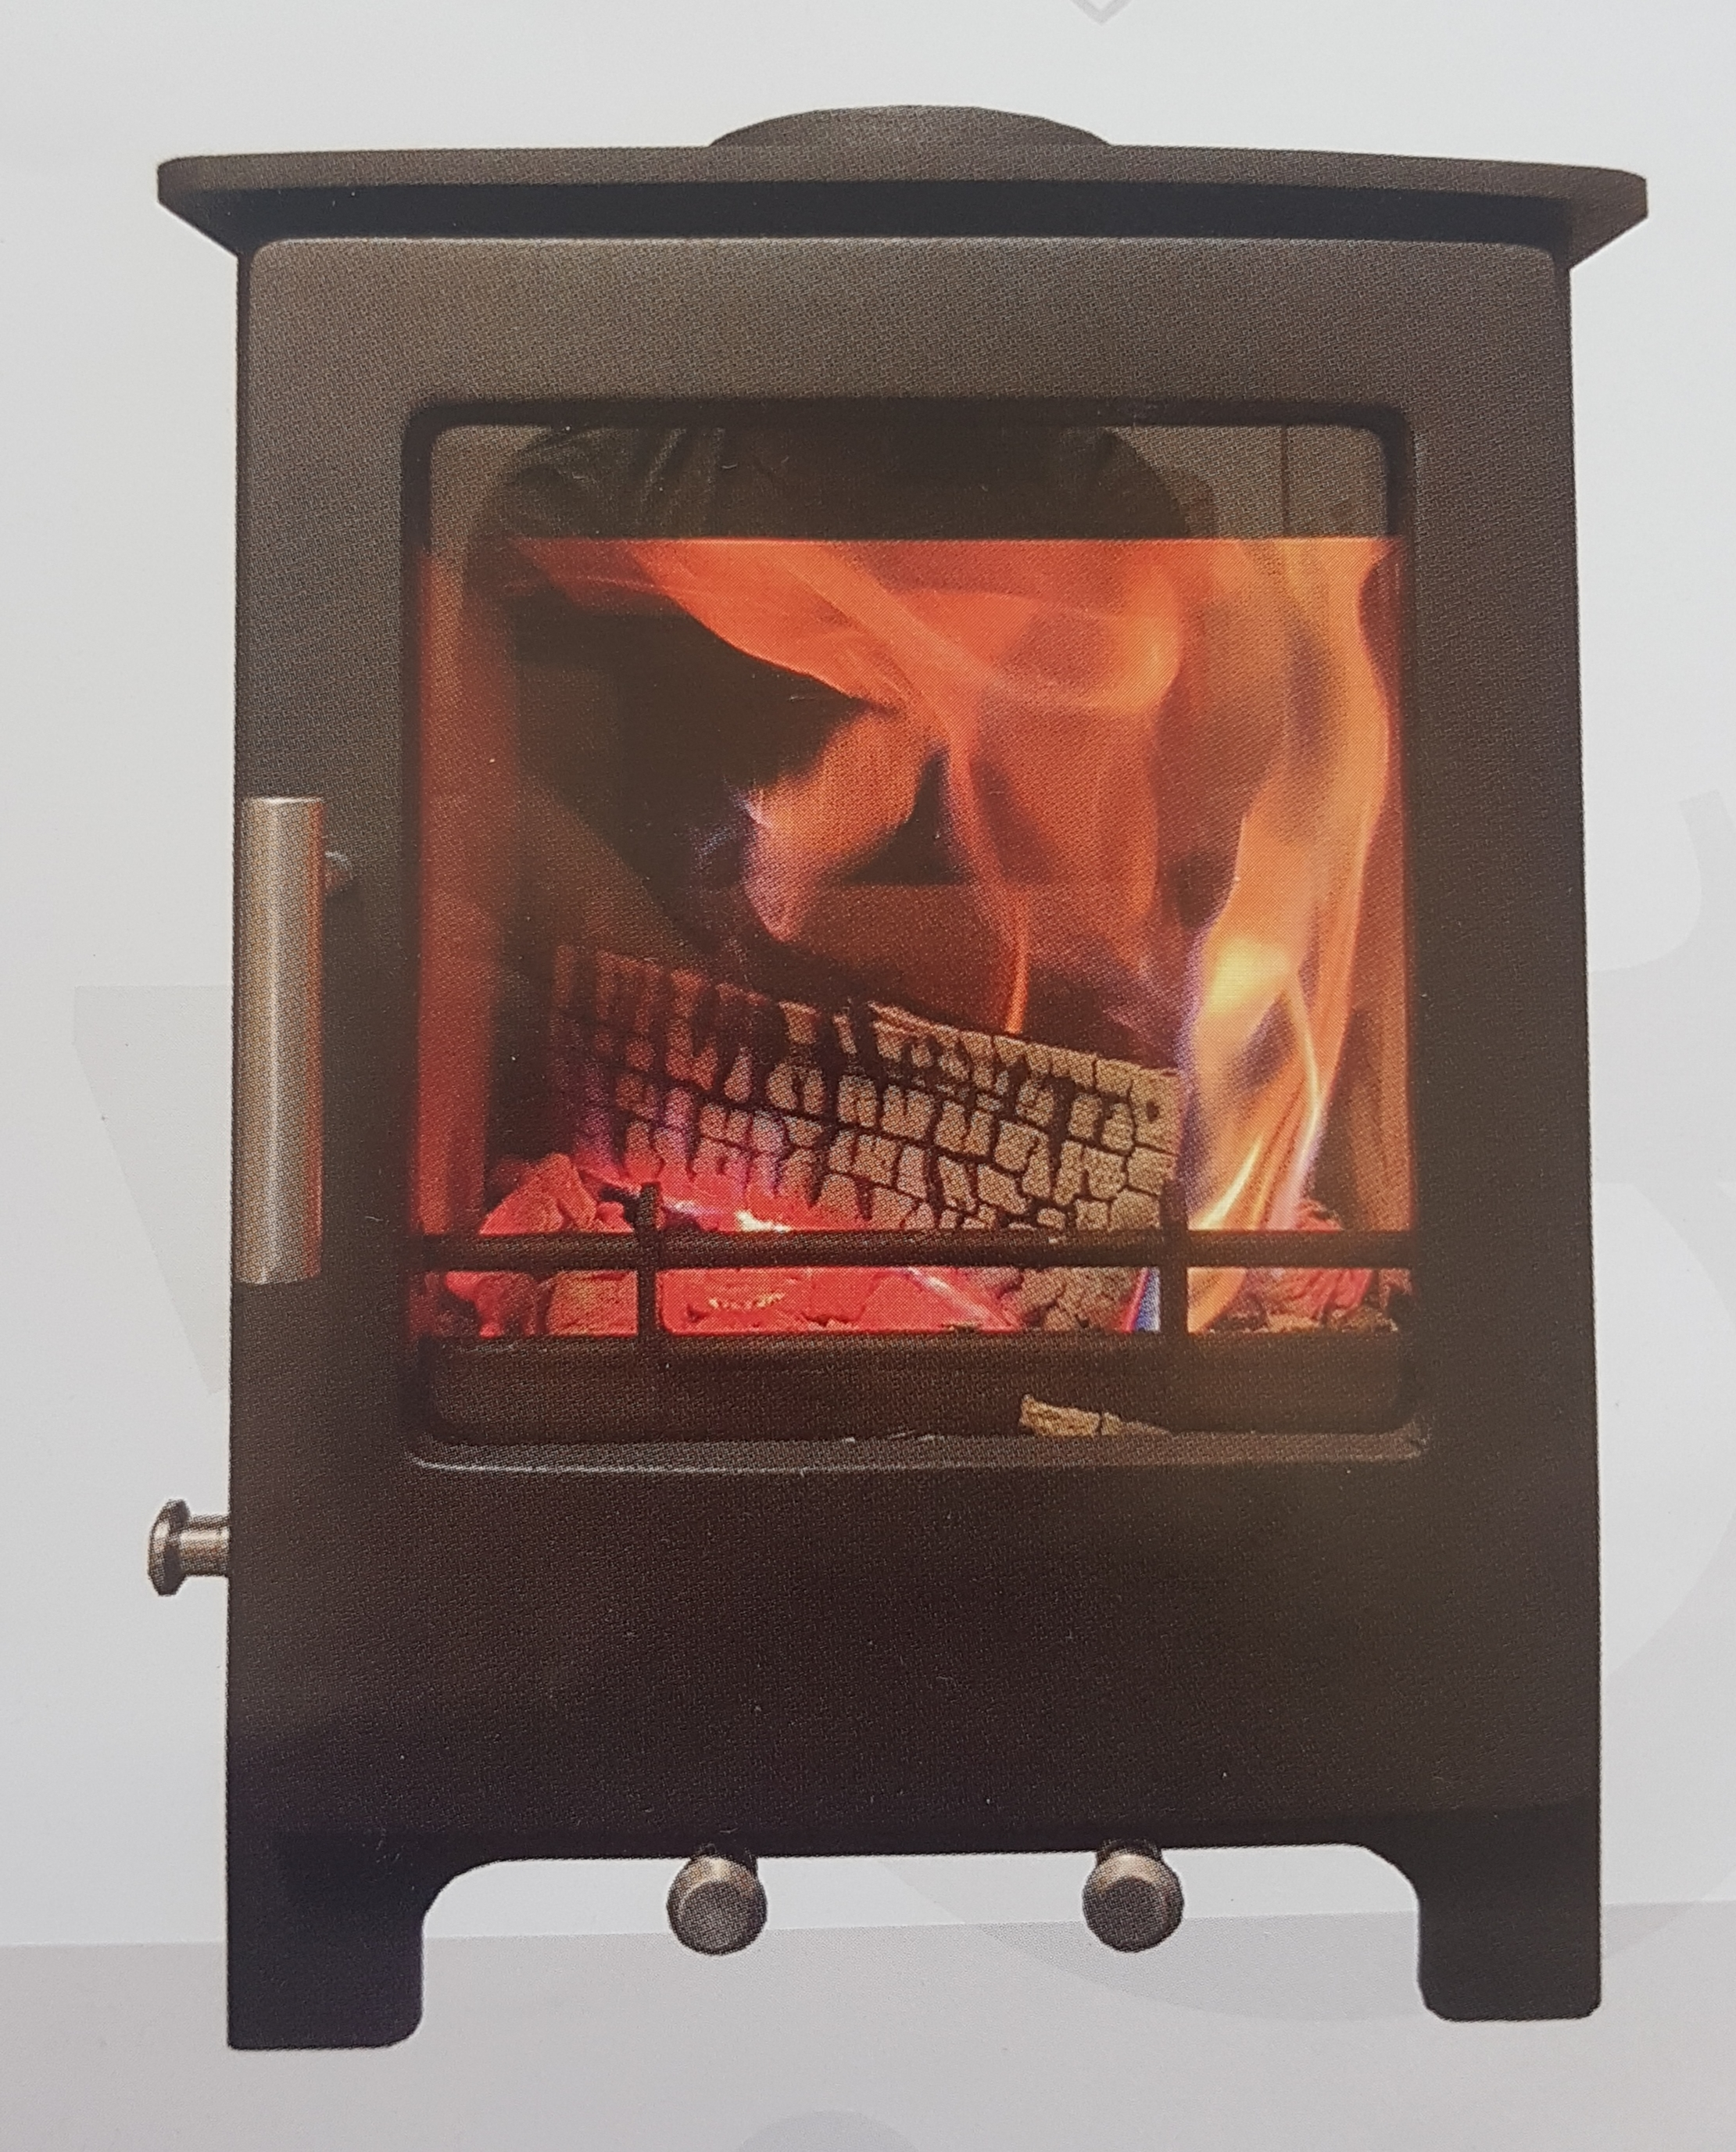 The Lowry 5kW - available in August